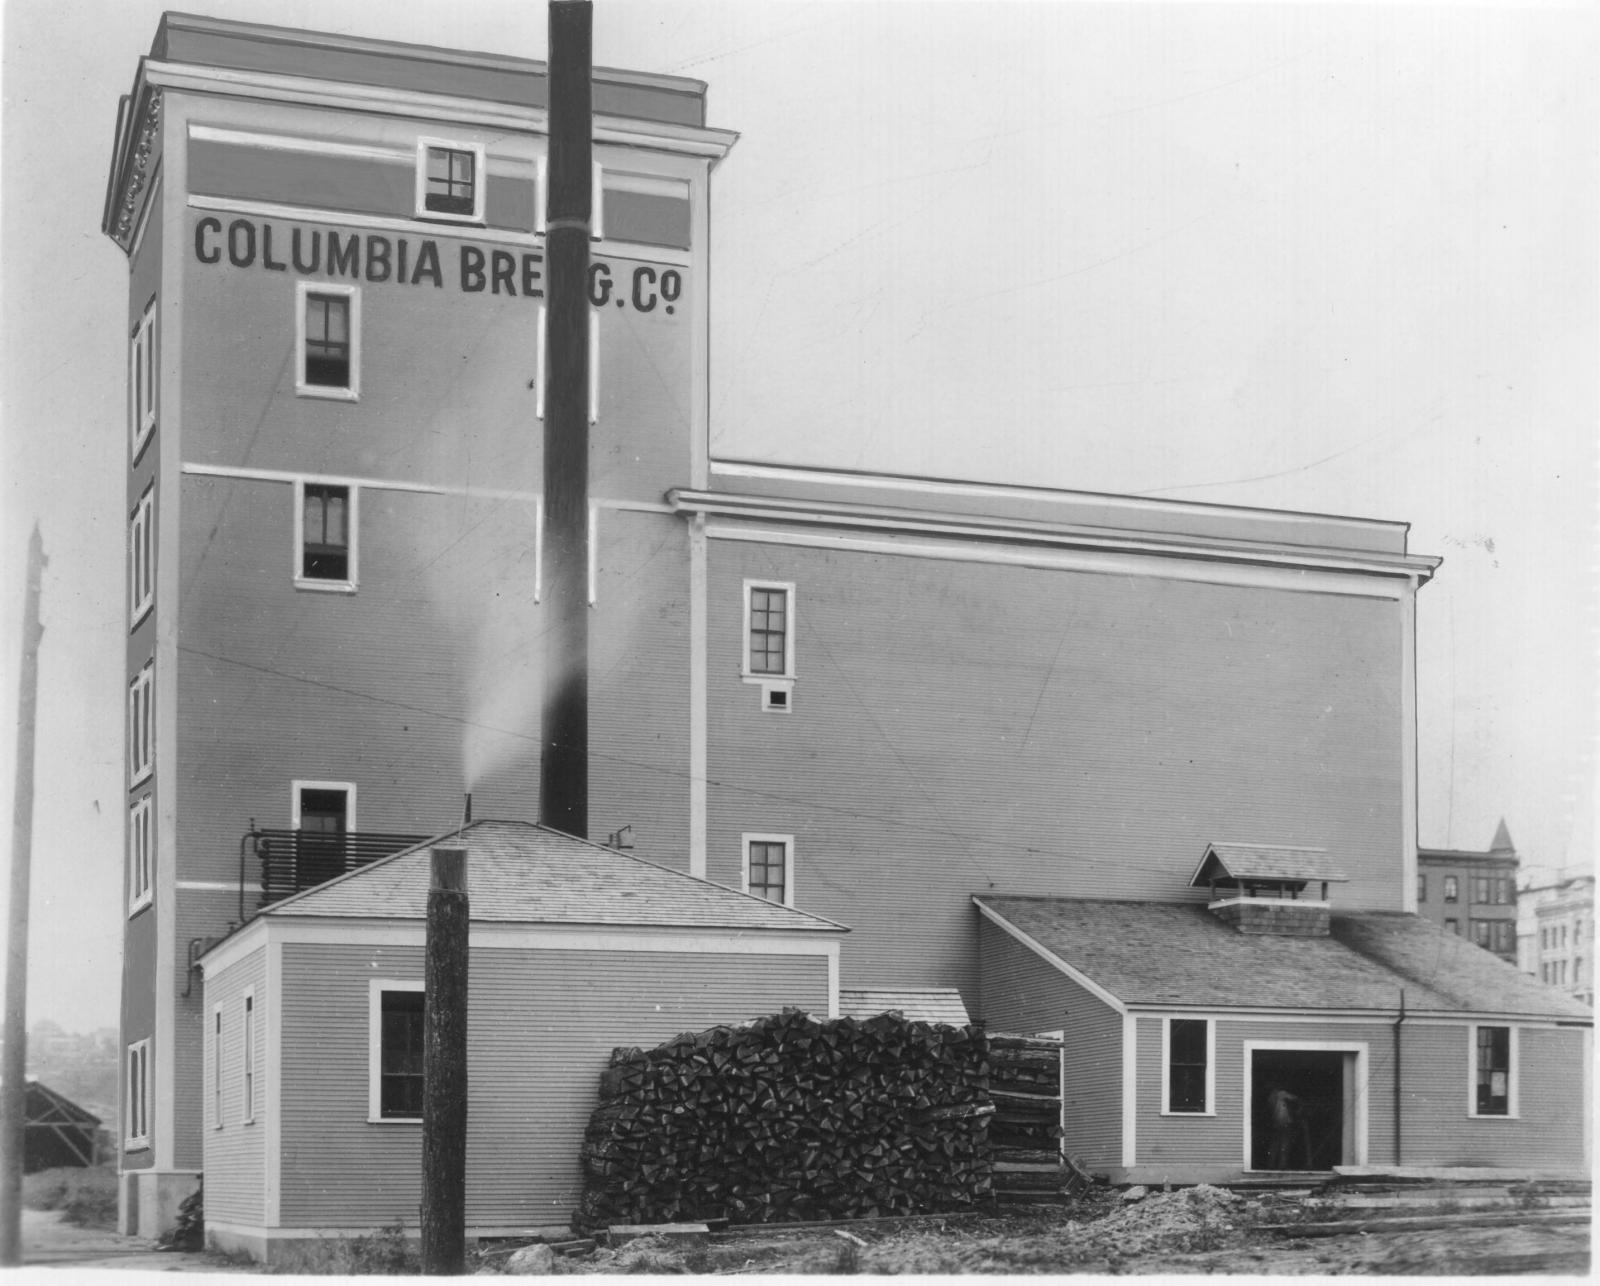 Columbia Brewing Company's original building, ca. 1912 (Richards Studio, used with permission from Tacoma Public Library)